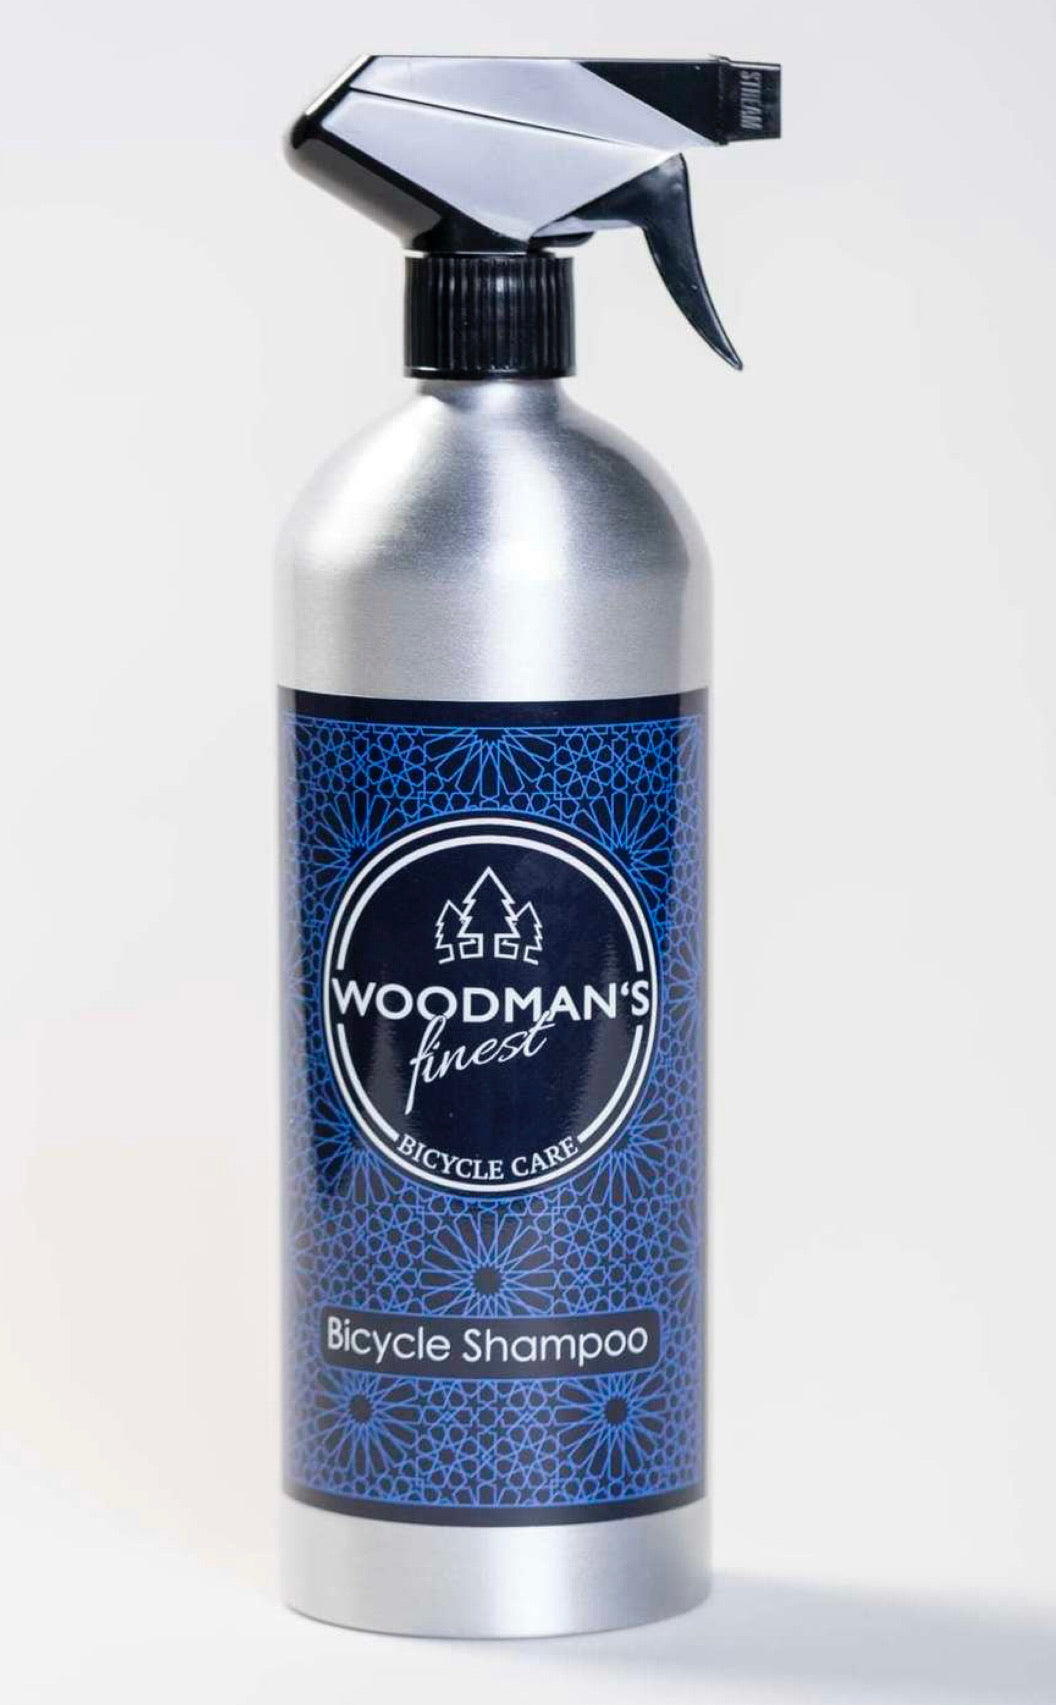 Woodman's Finest Bike Shampoo 1l sproeifles